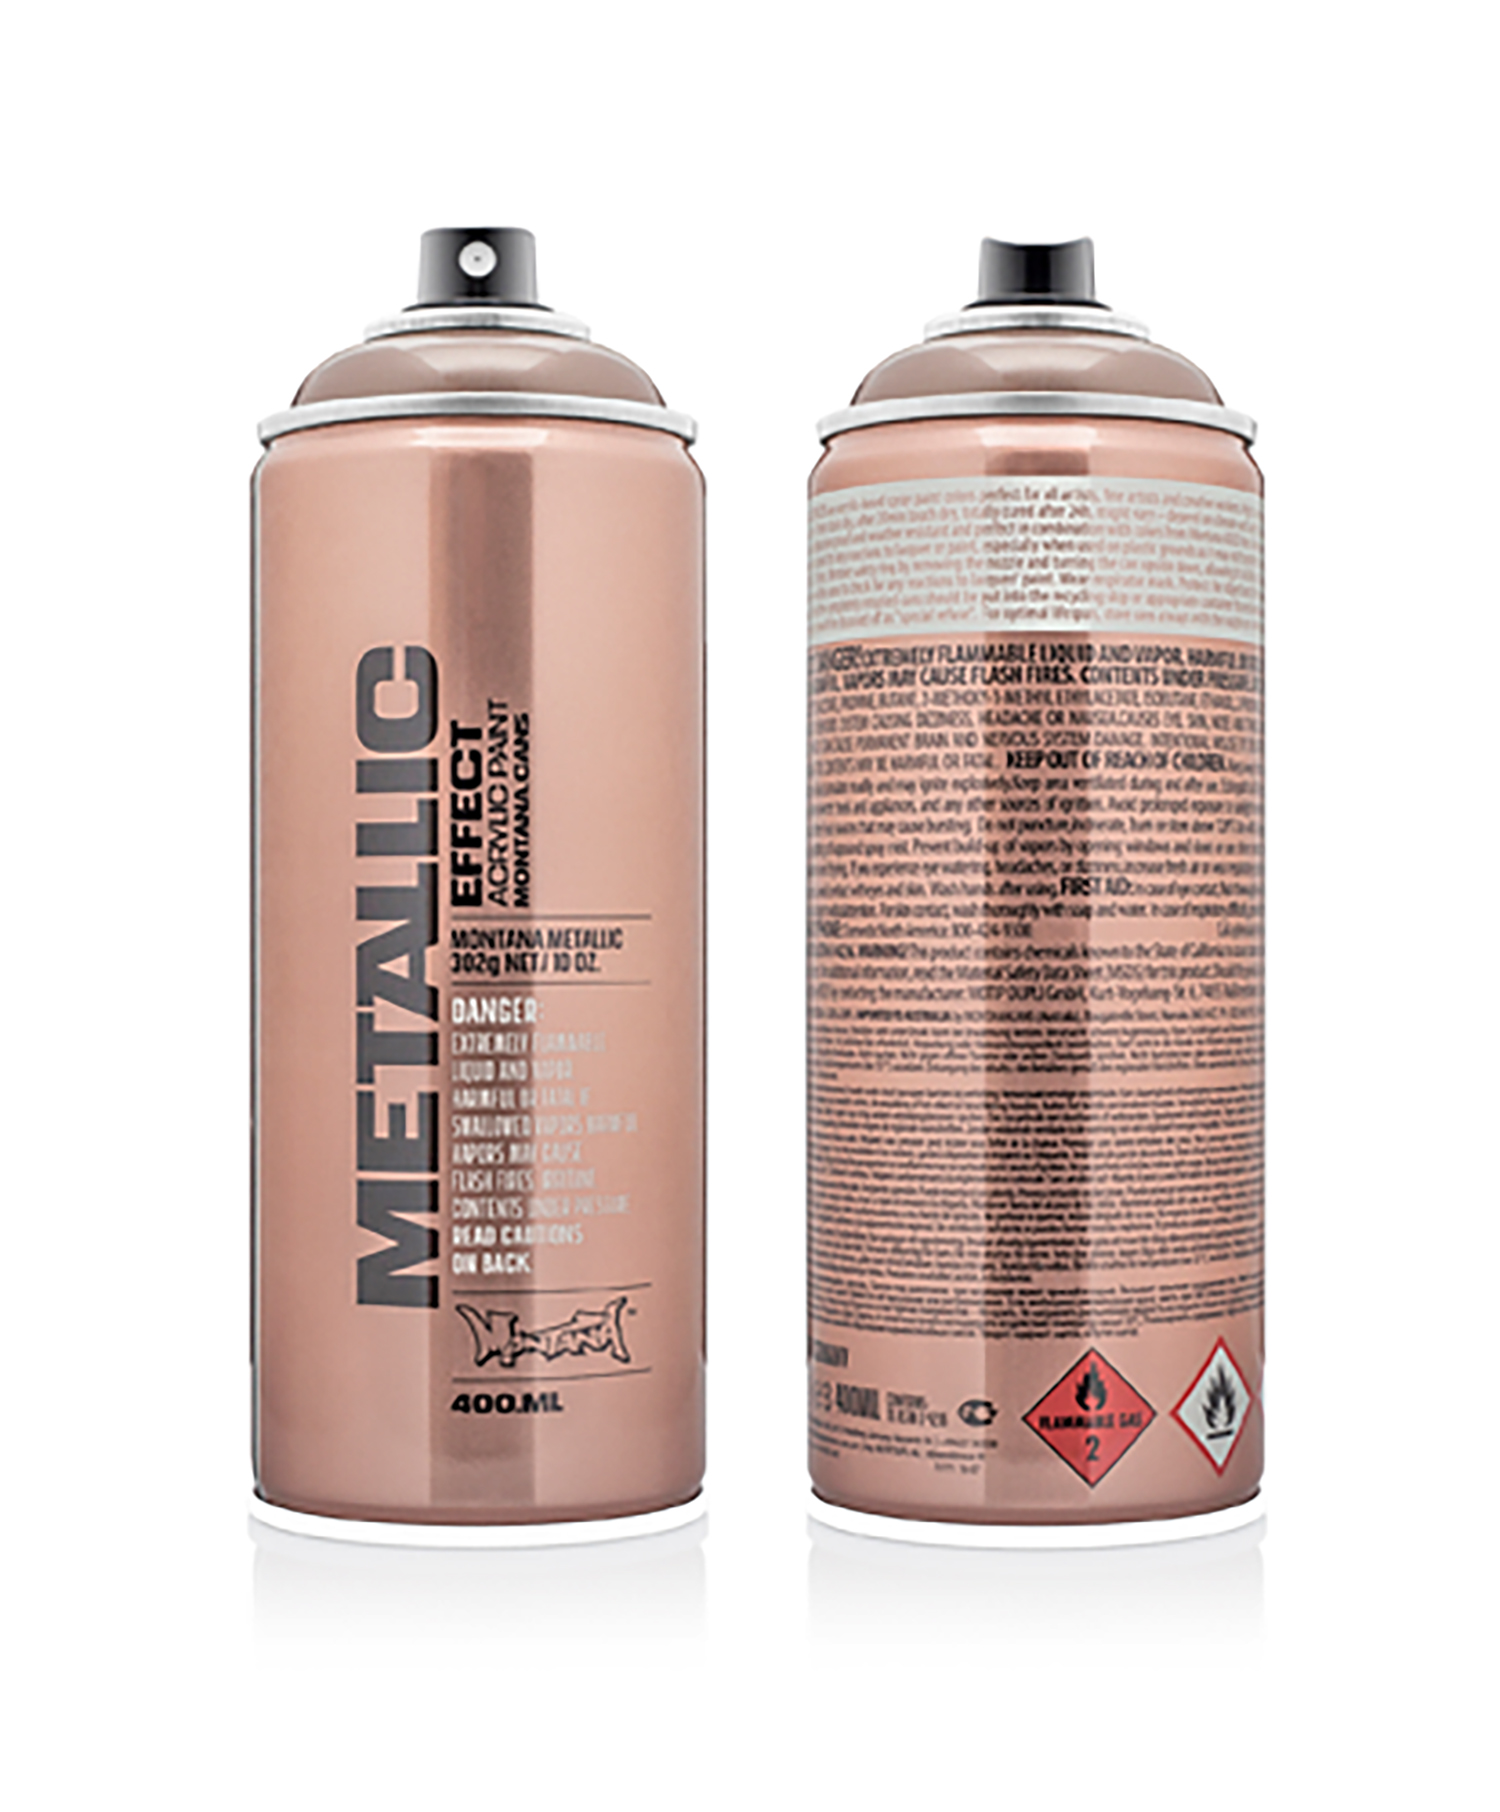 MONTANA-EFFECT-METALLIC-SPRAY-400ML_EMC2010